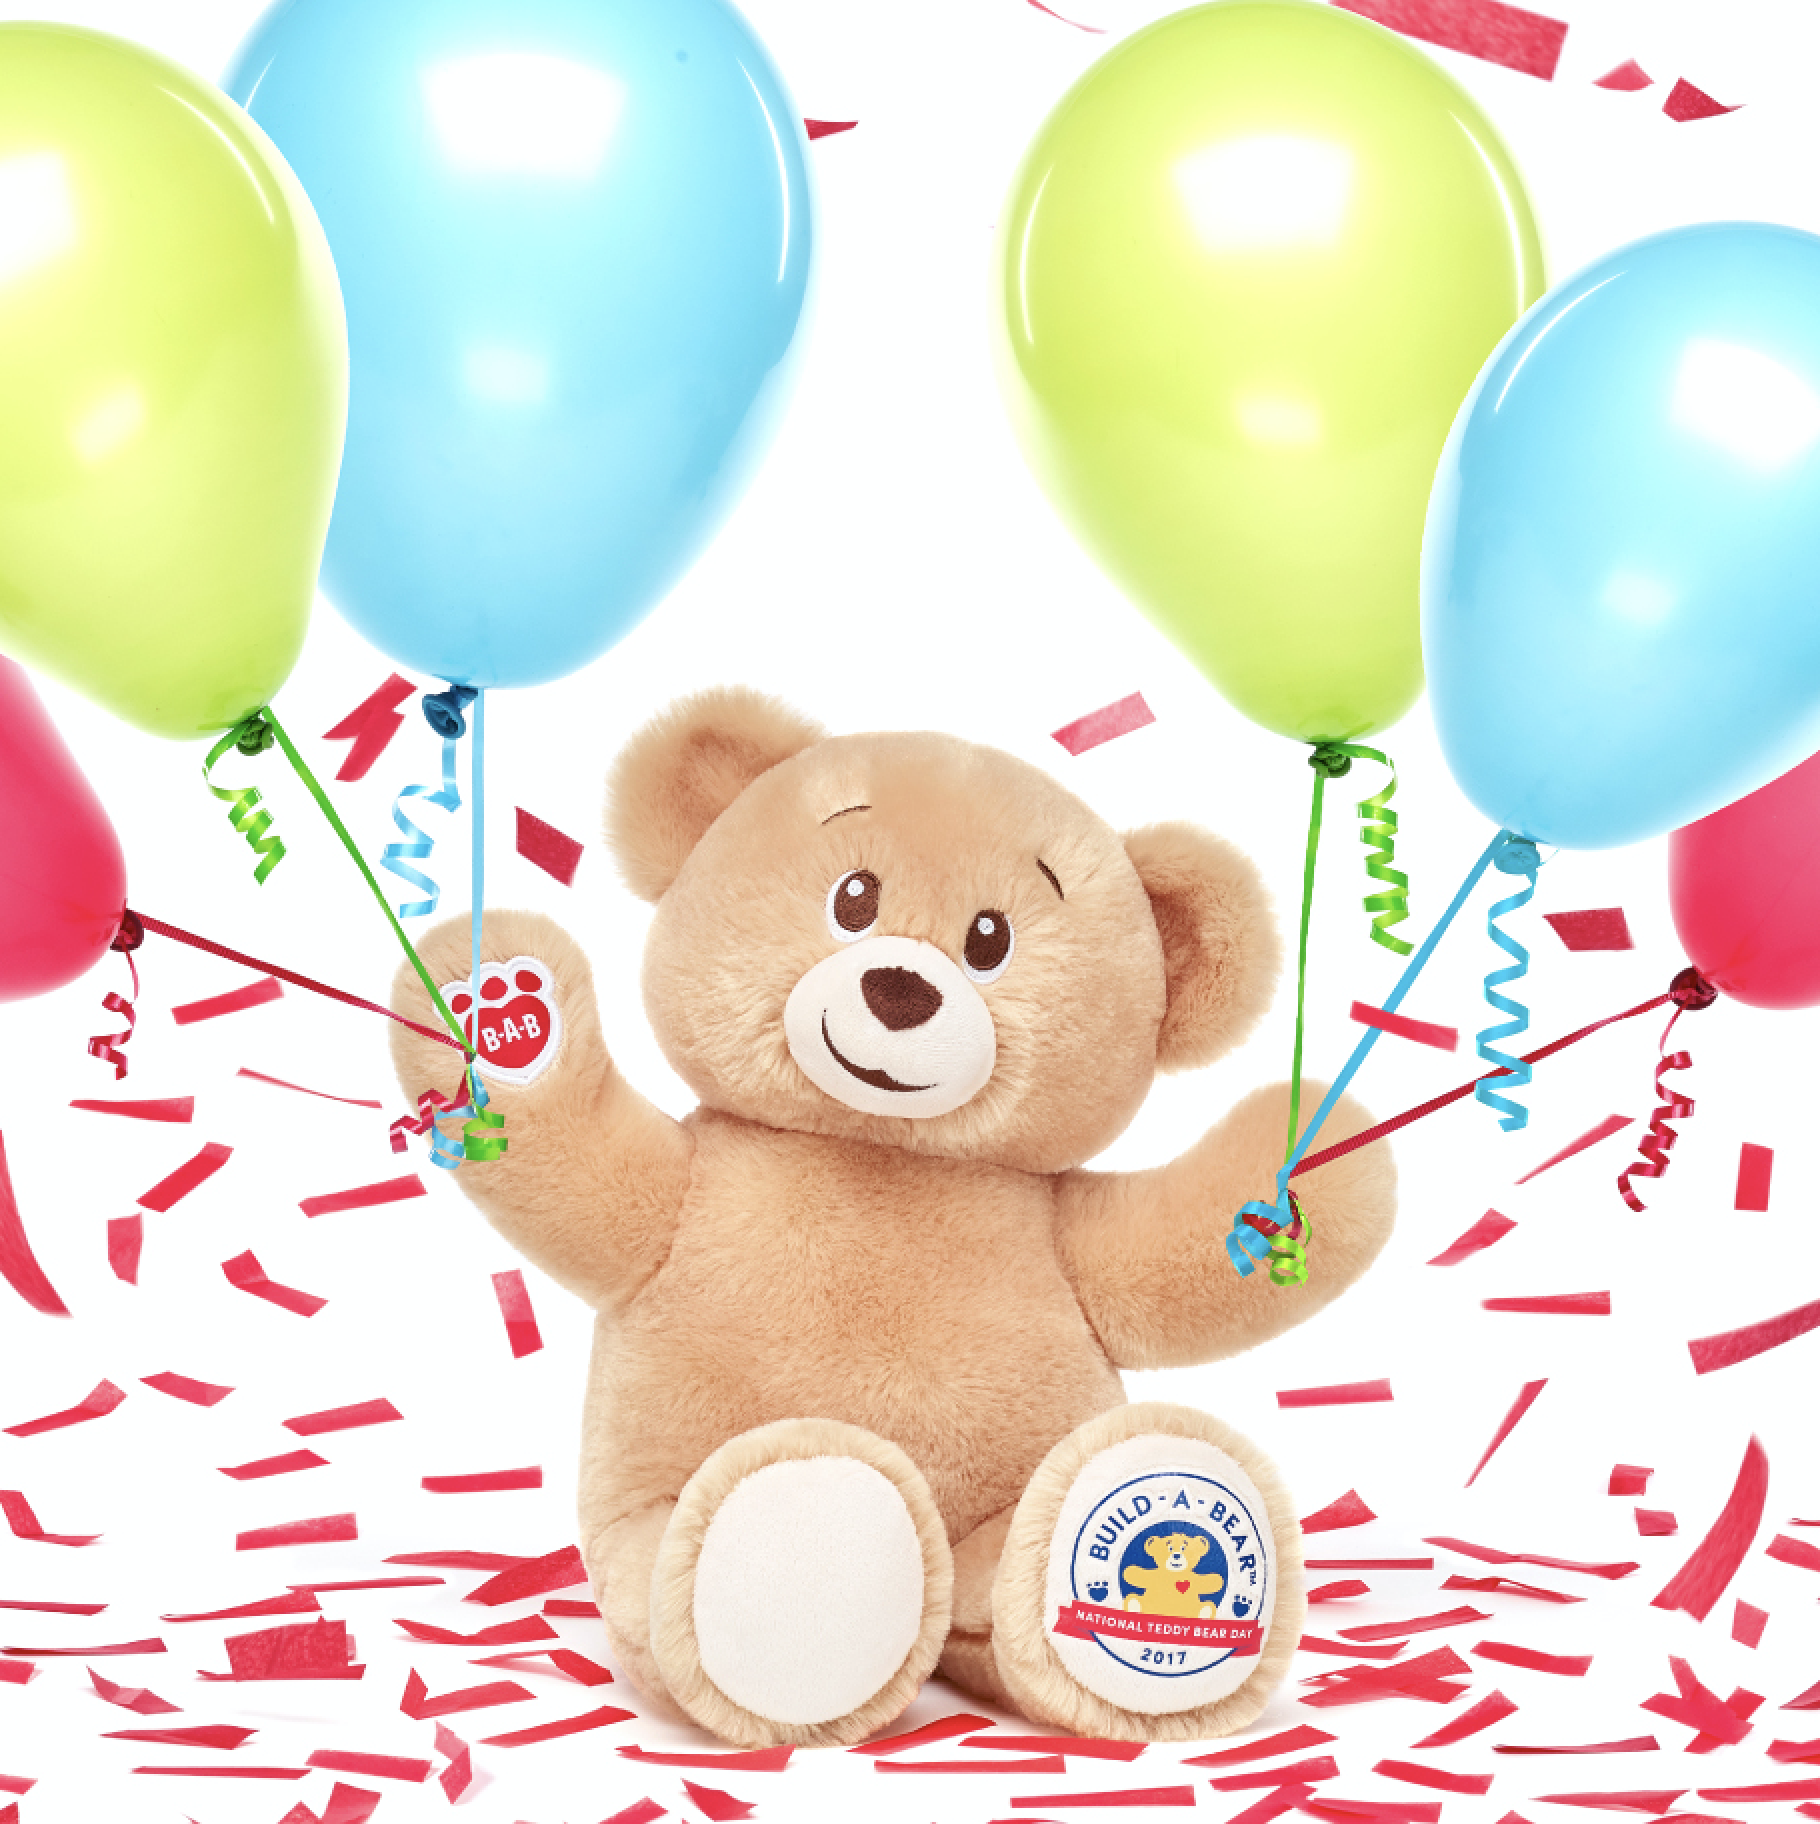 Celebrating National Teddy Bear Day + Win a $100 Build-A-Bear Workshop Gift Card!